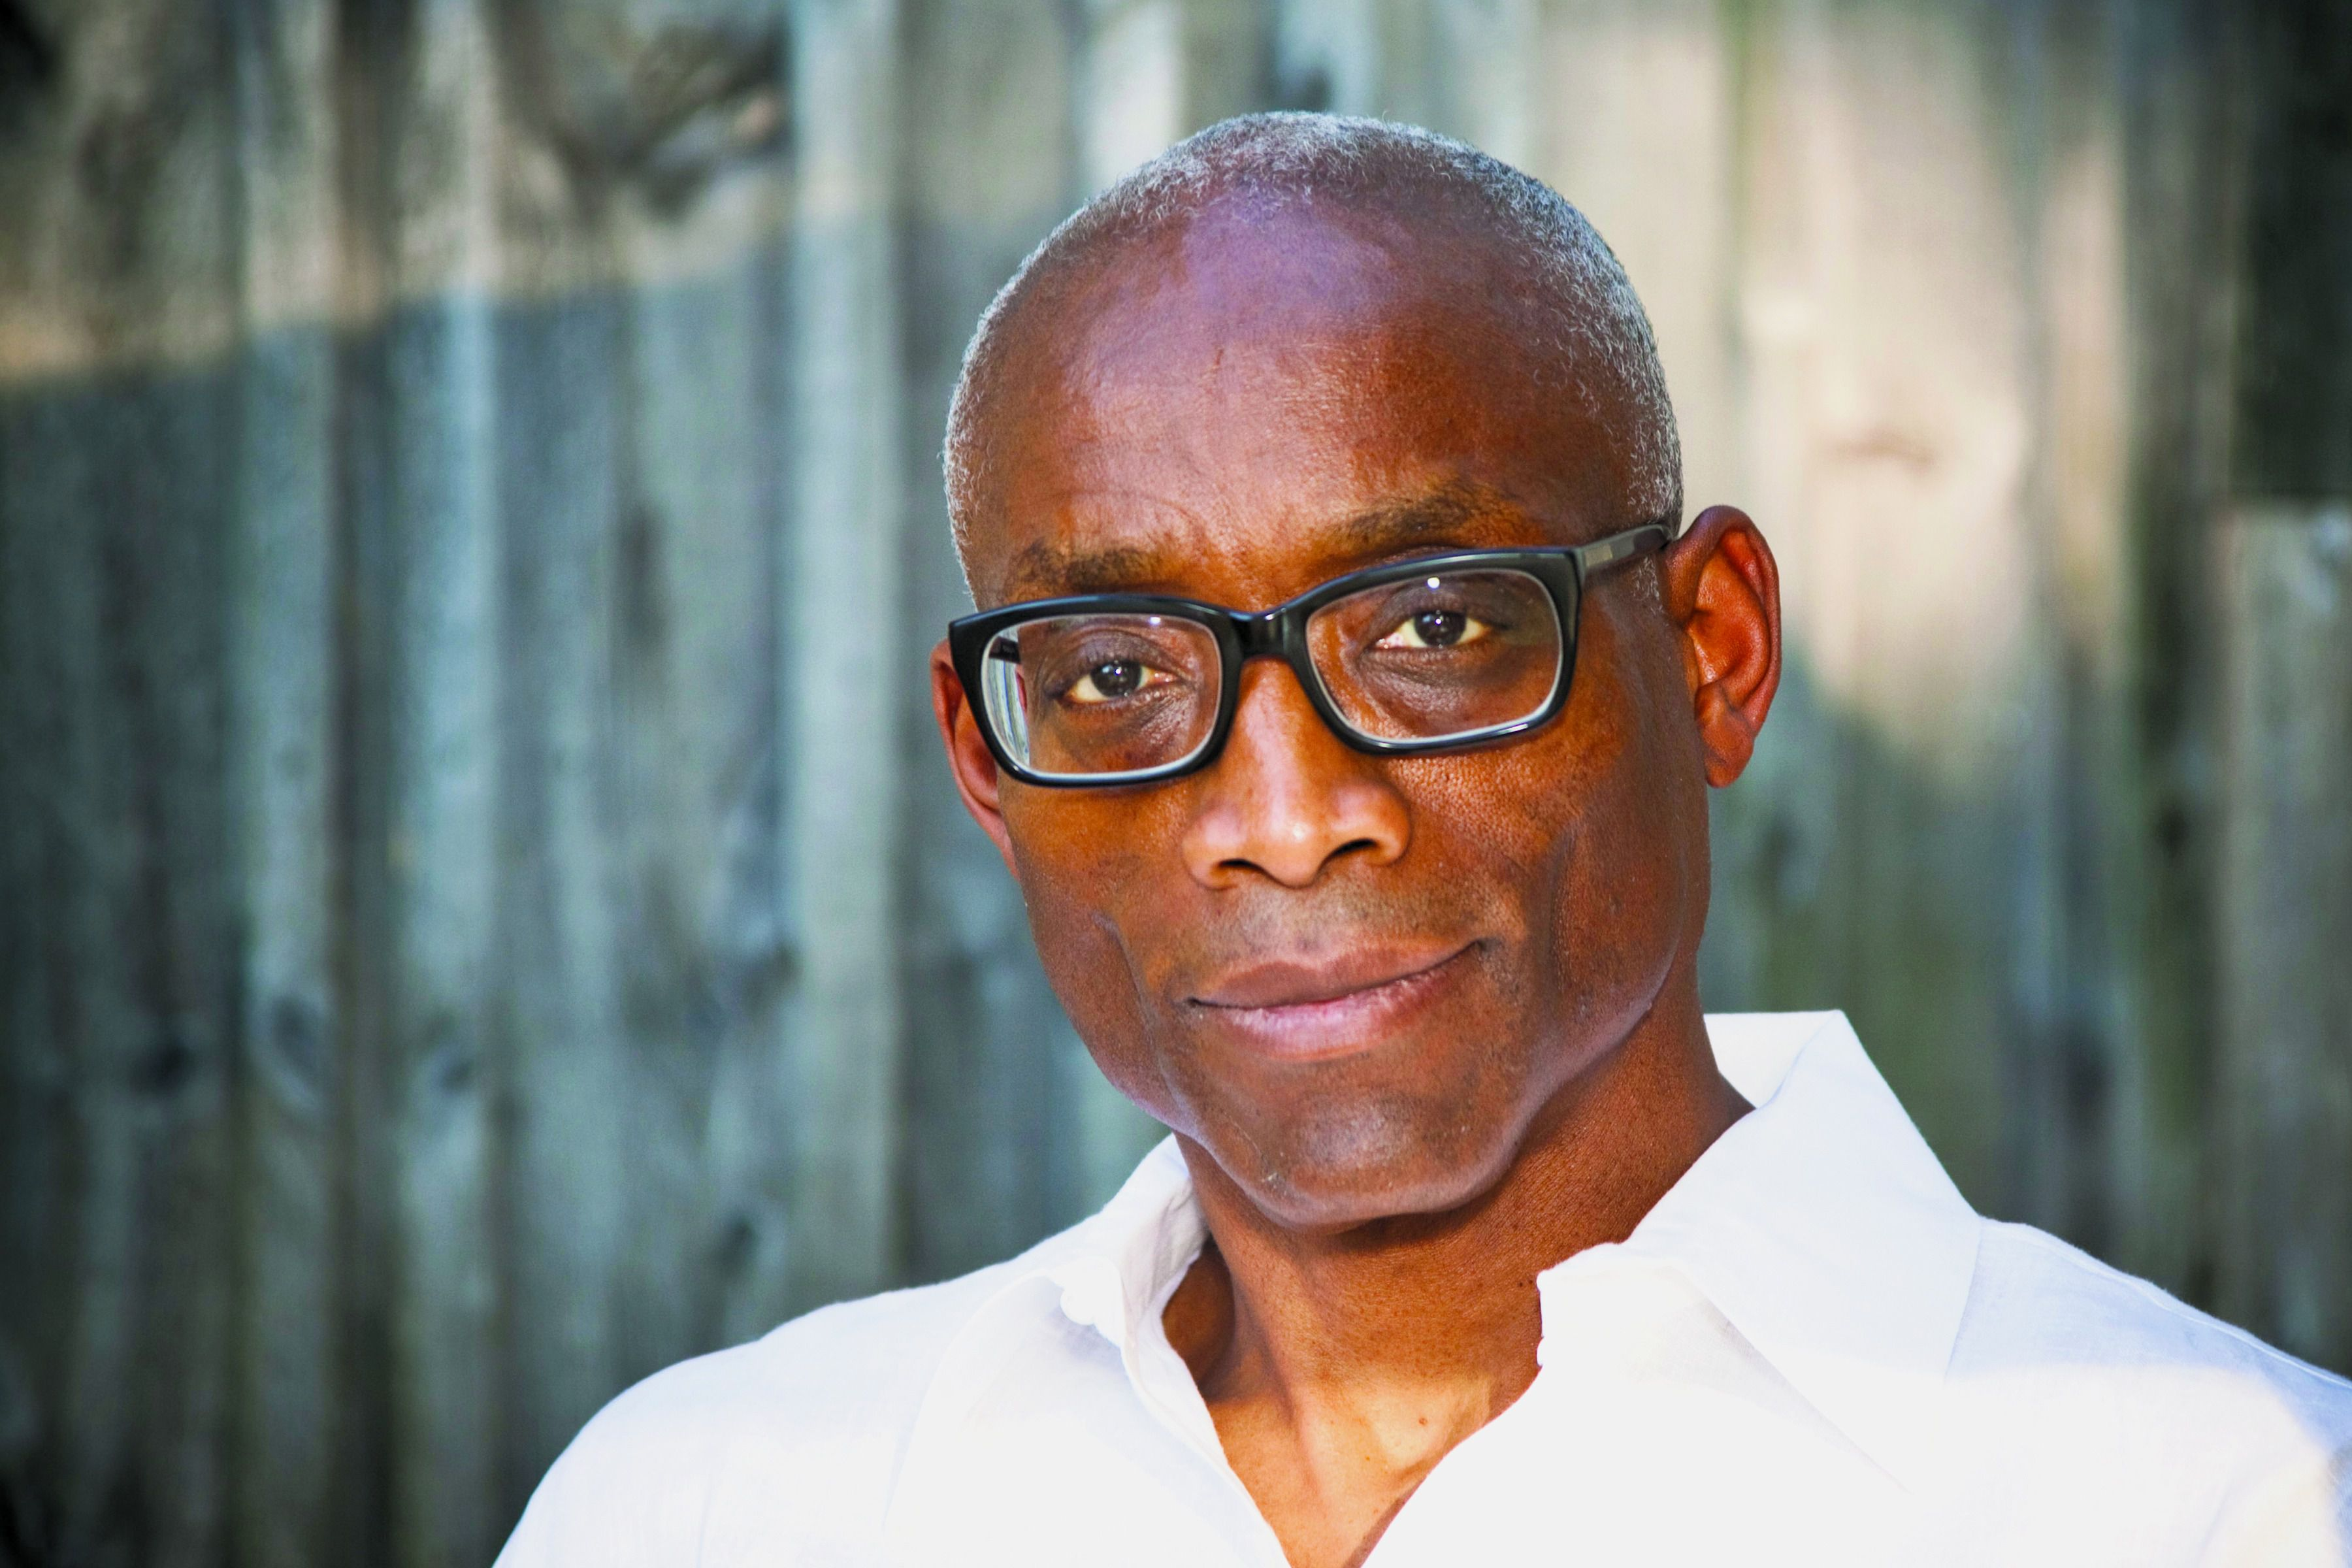 Bill T. Jones: The Tony Award-winning choreographer debuts his latest project, Analogy/Dora: Tramontane, this month.